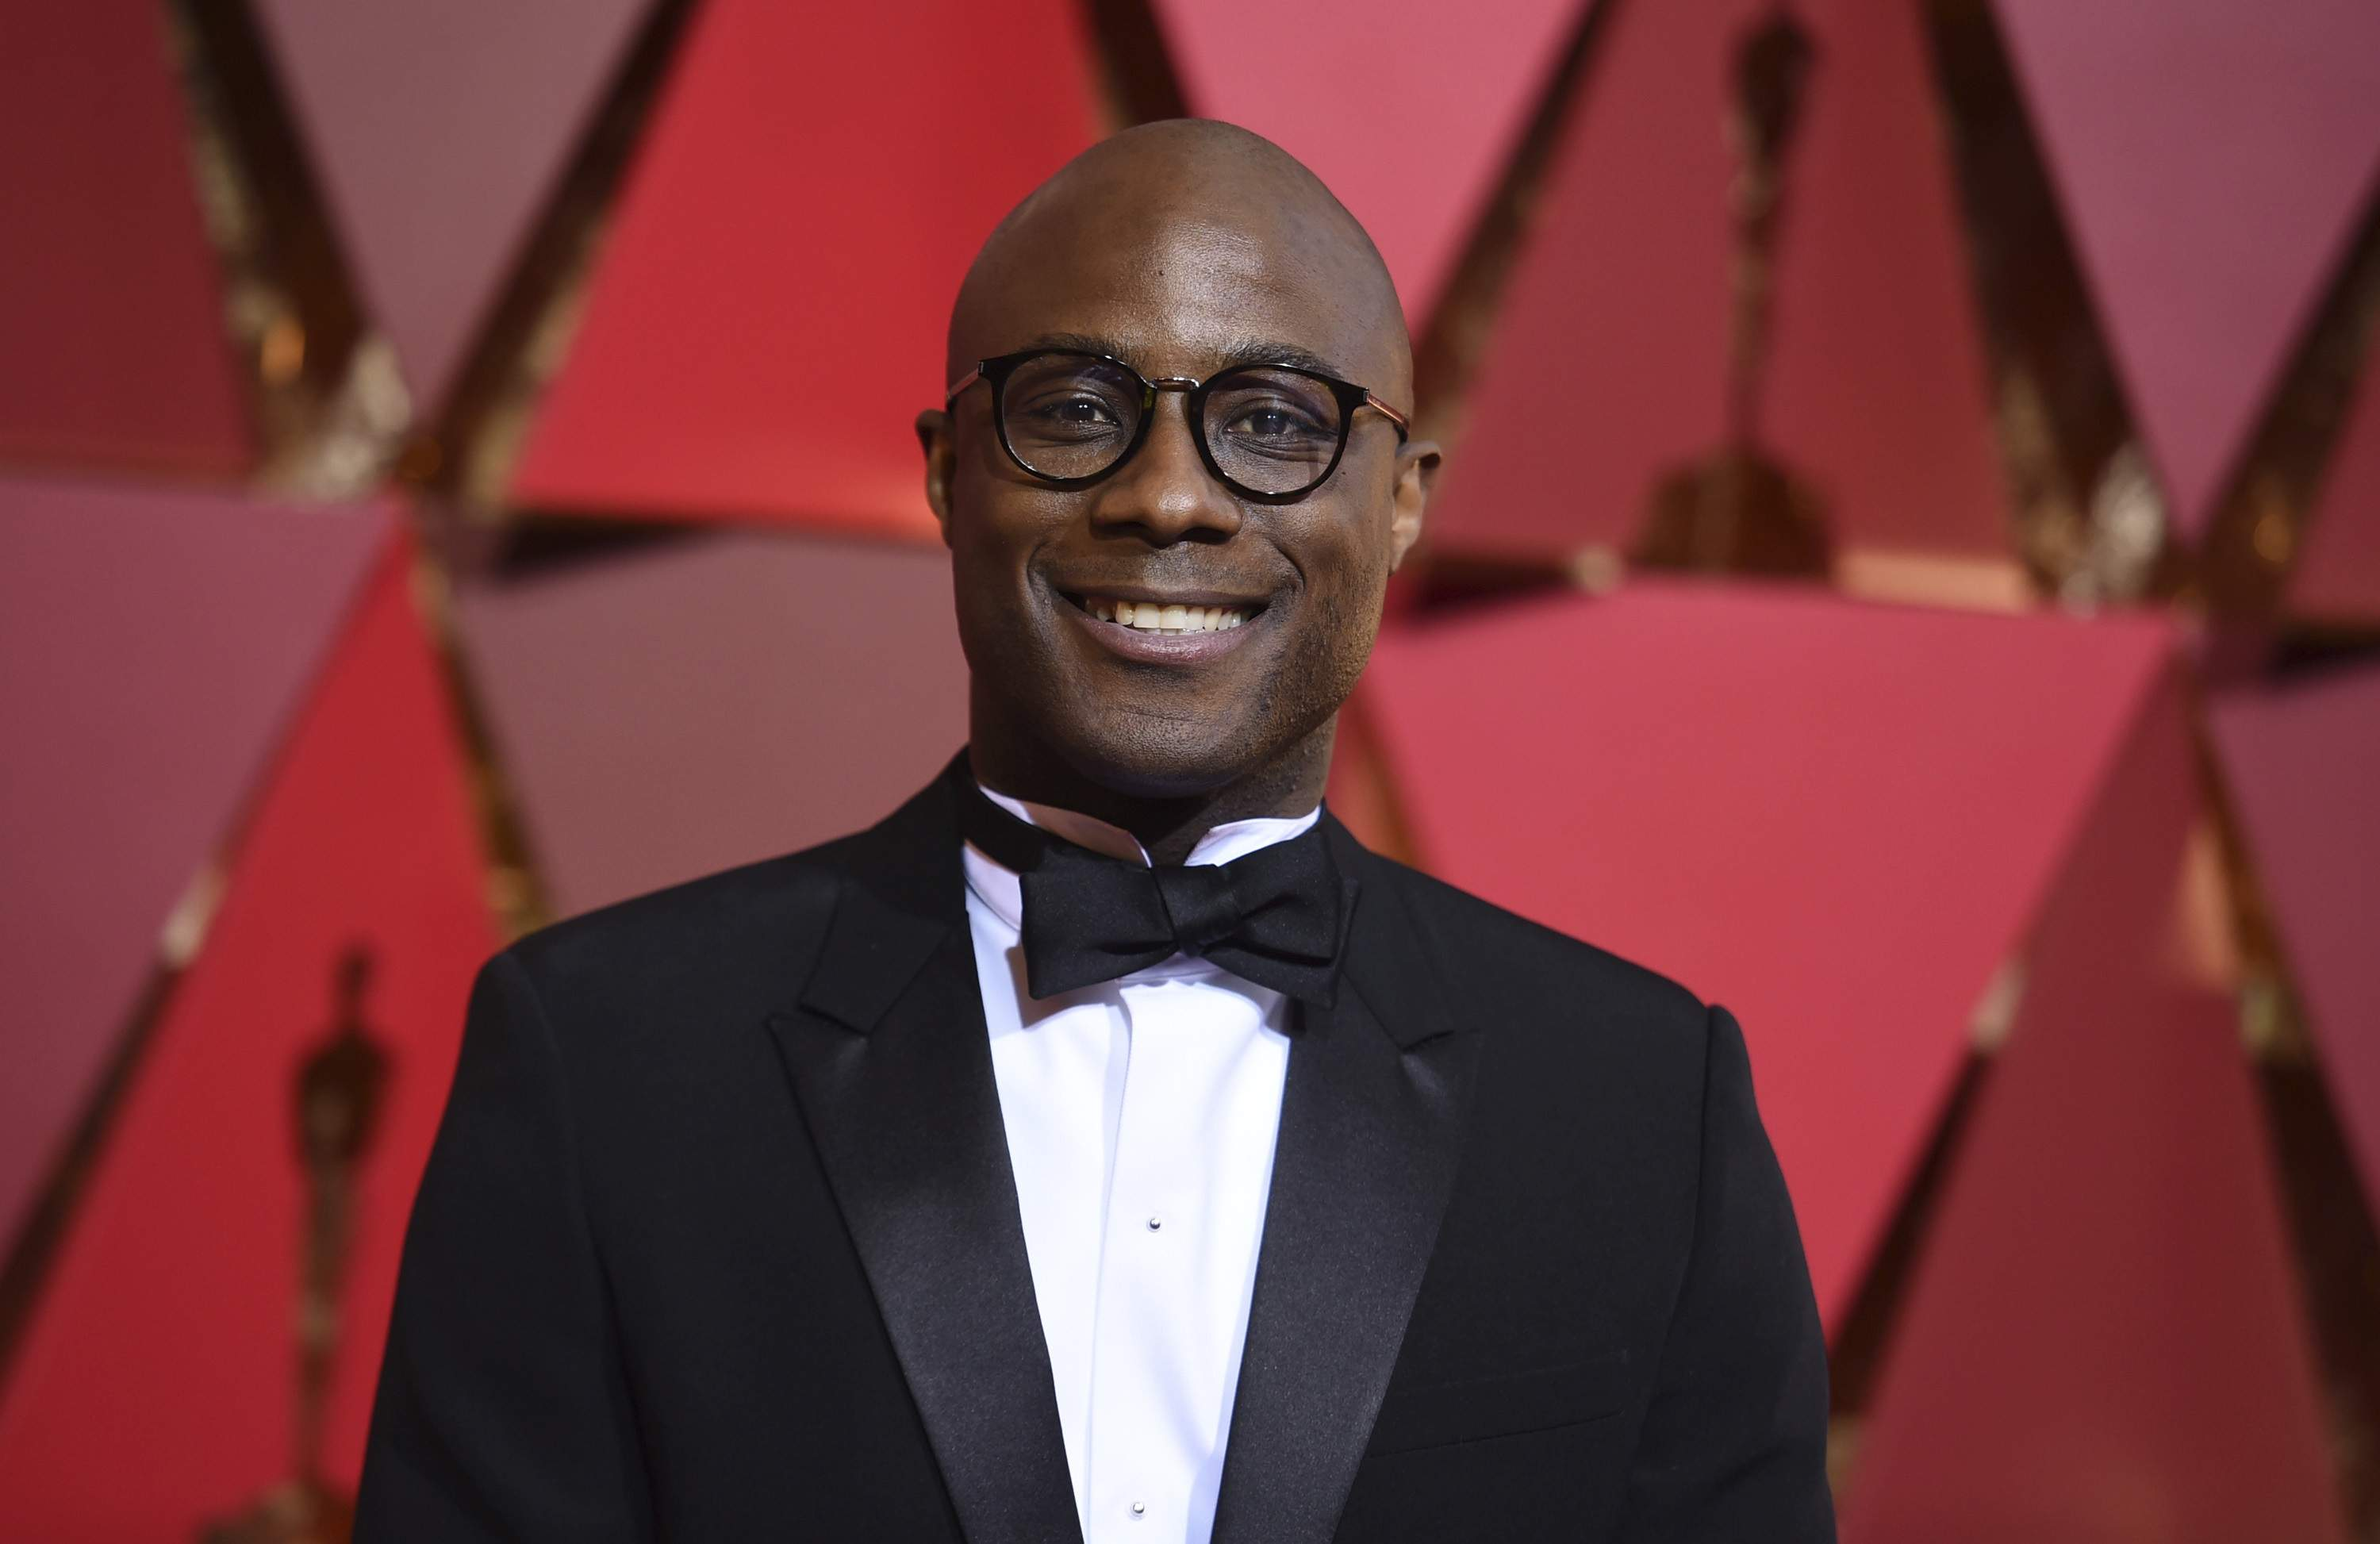 Barry Jenkins arrives at the Oscars on Sunday, Feb. 26, 2017, at the Dolby Theatre in Los Angeles. THE ASSOCIATED PRESS